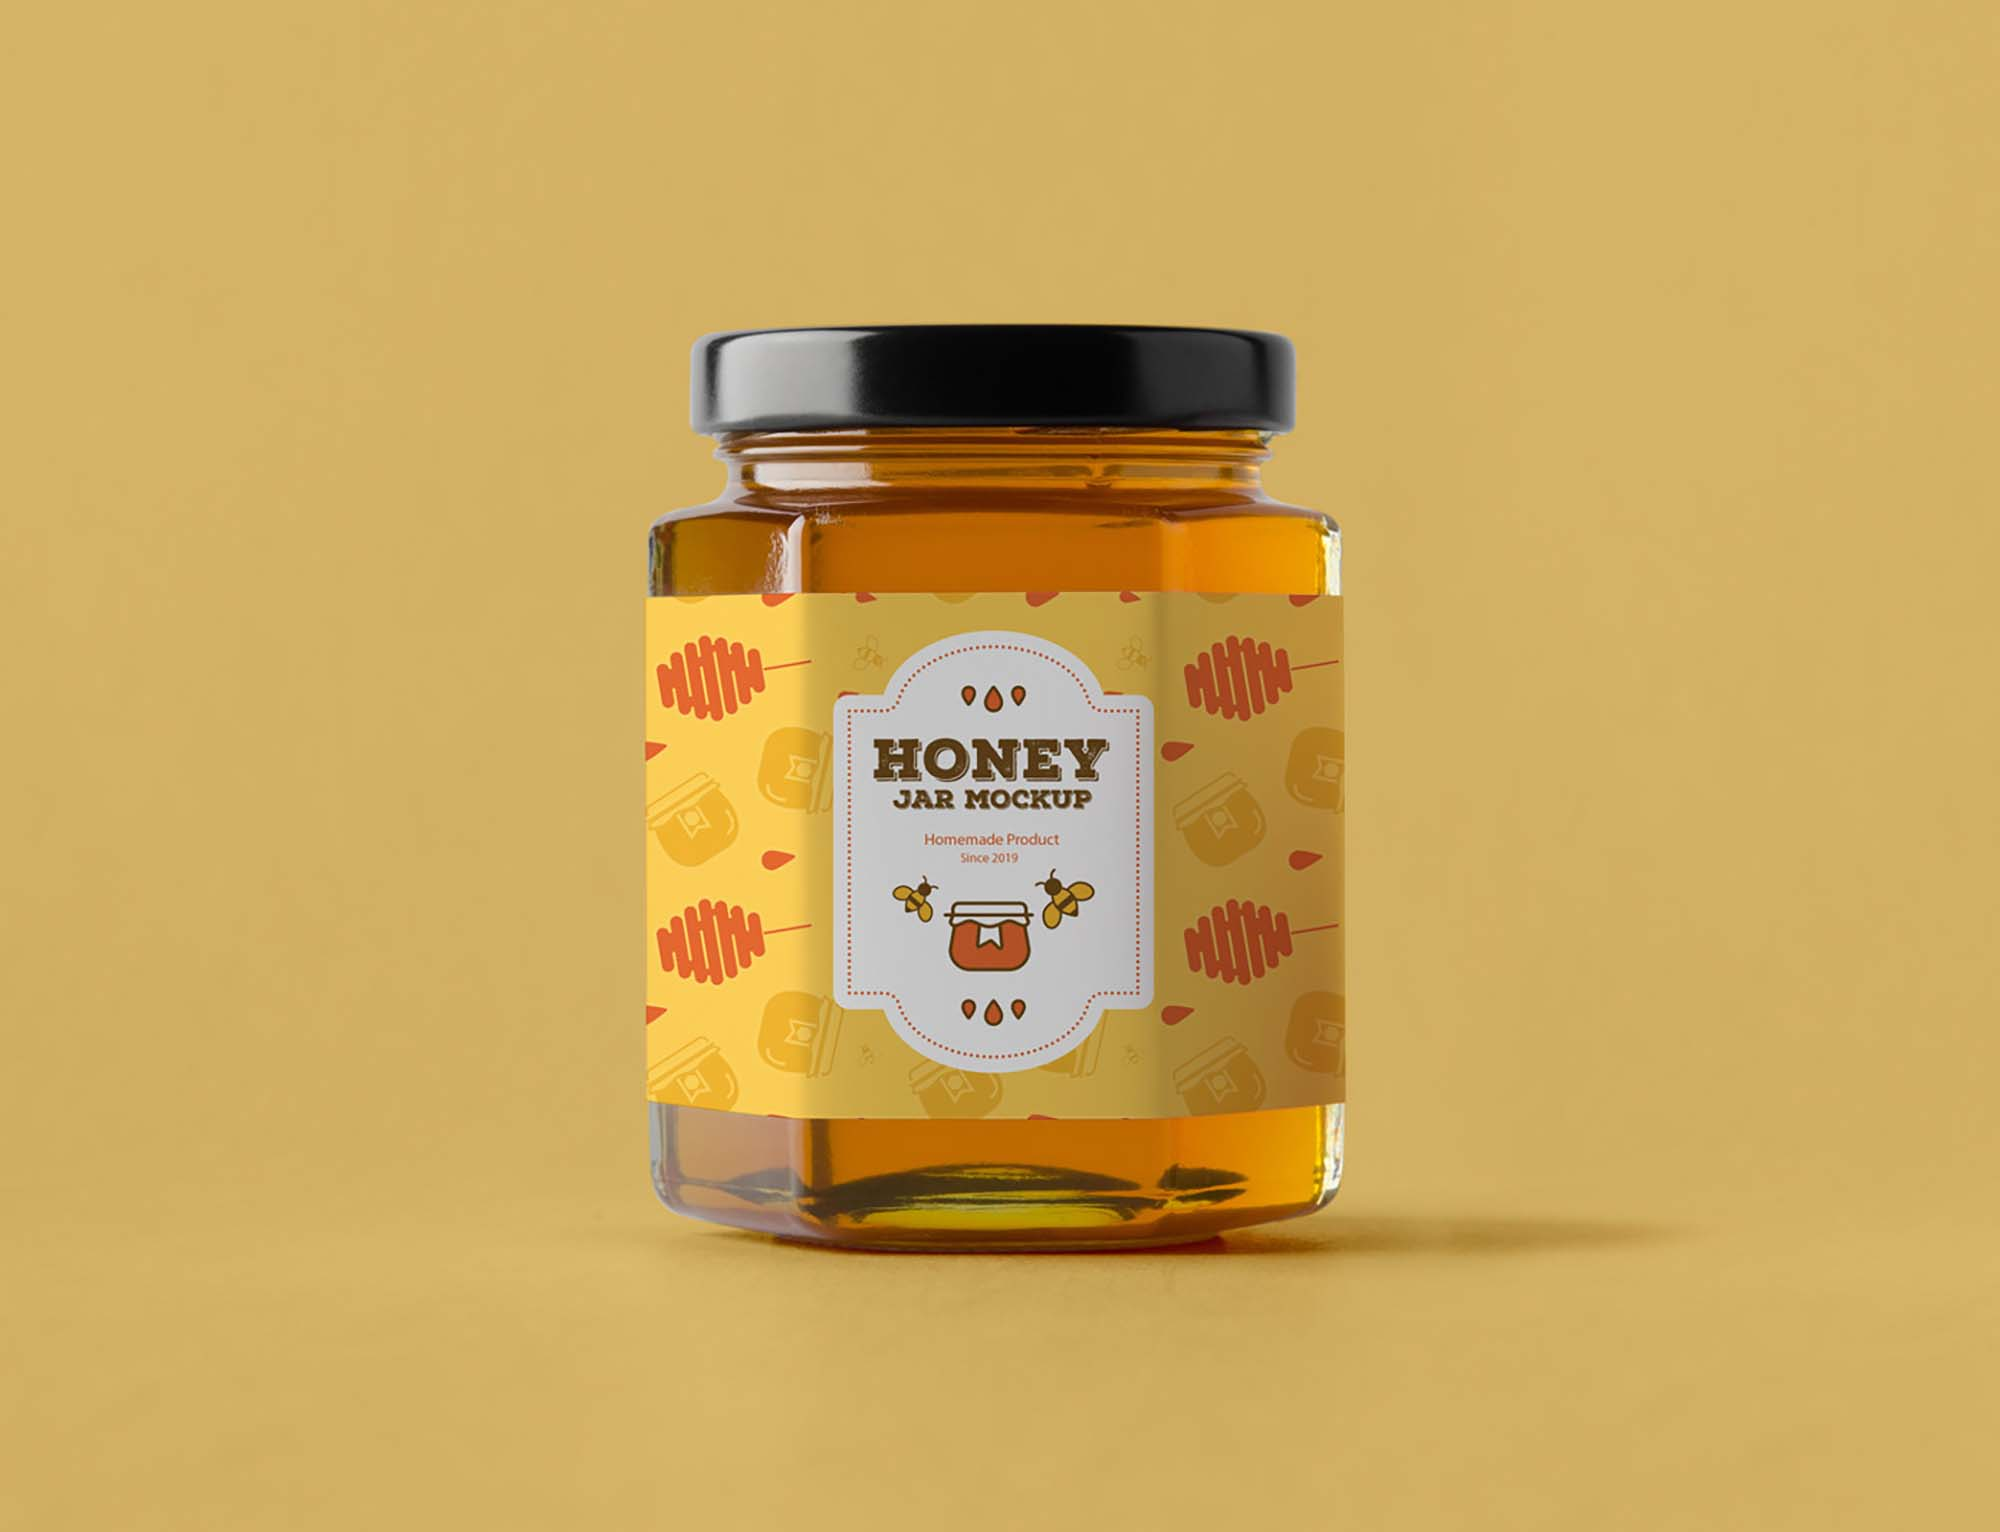 Honey Jar Mockup 1